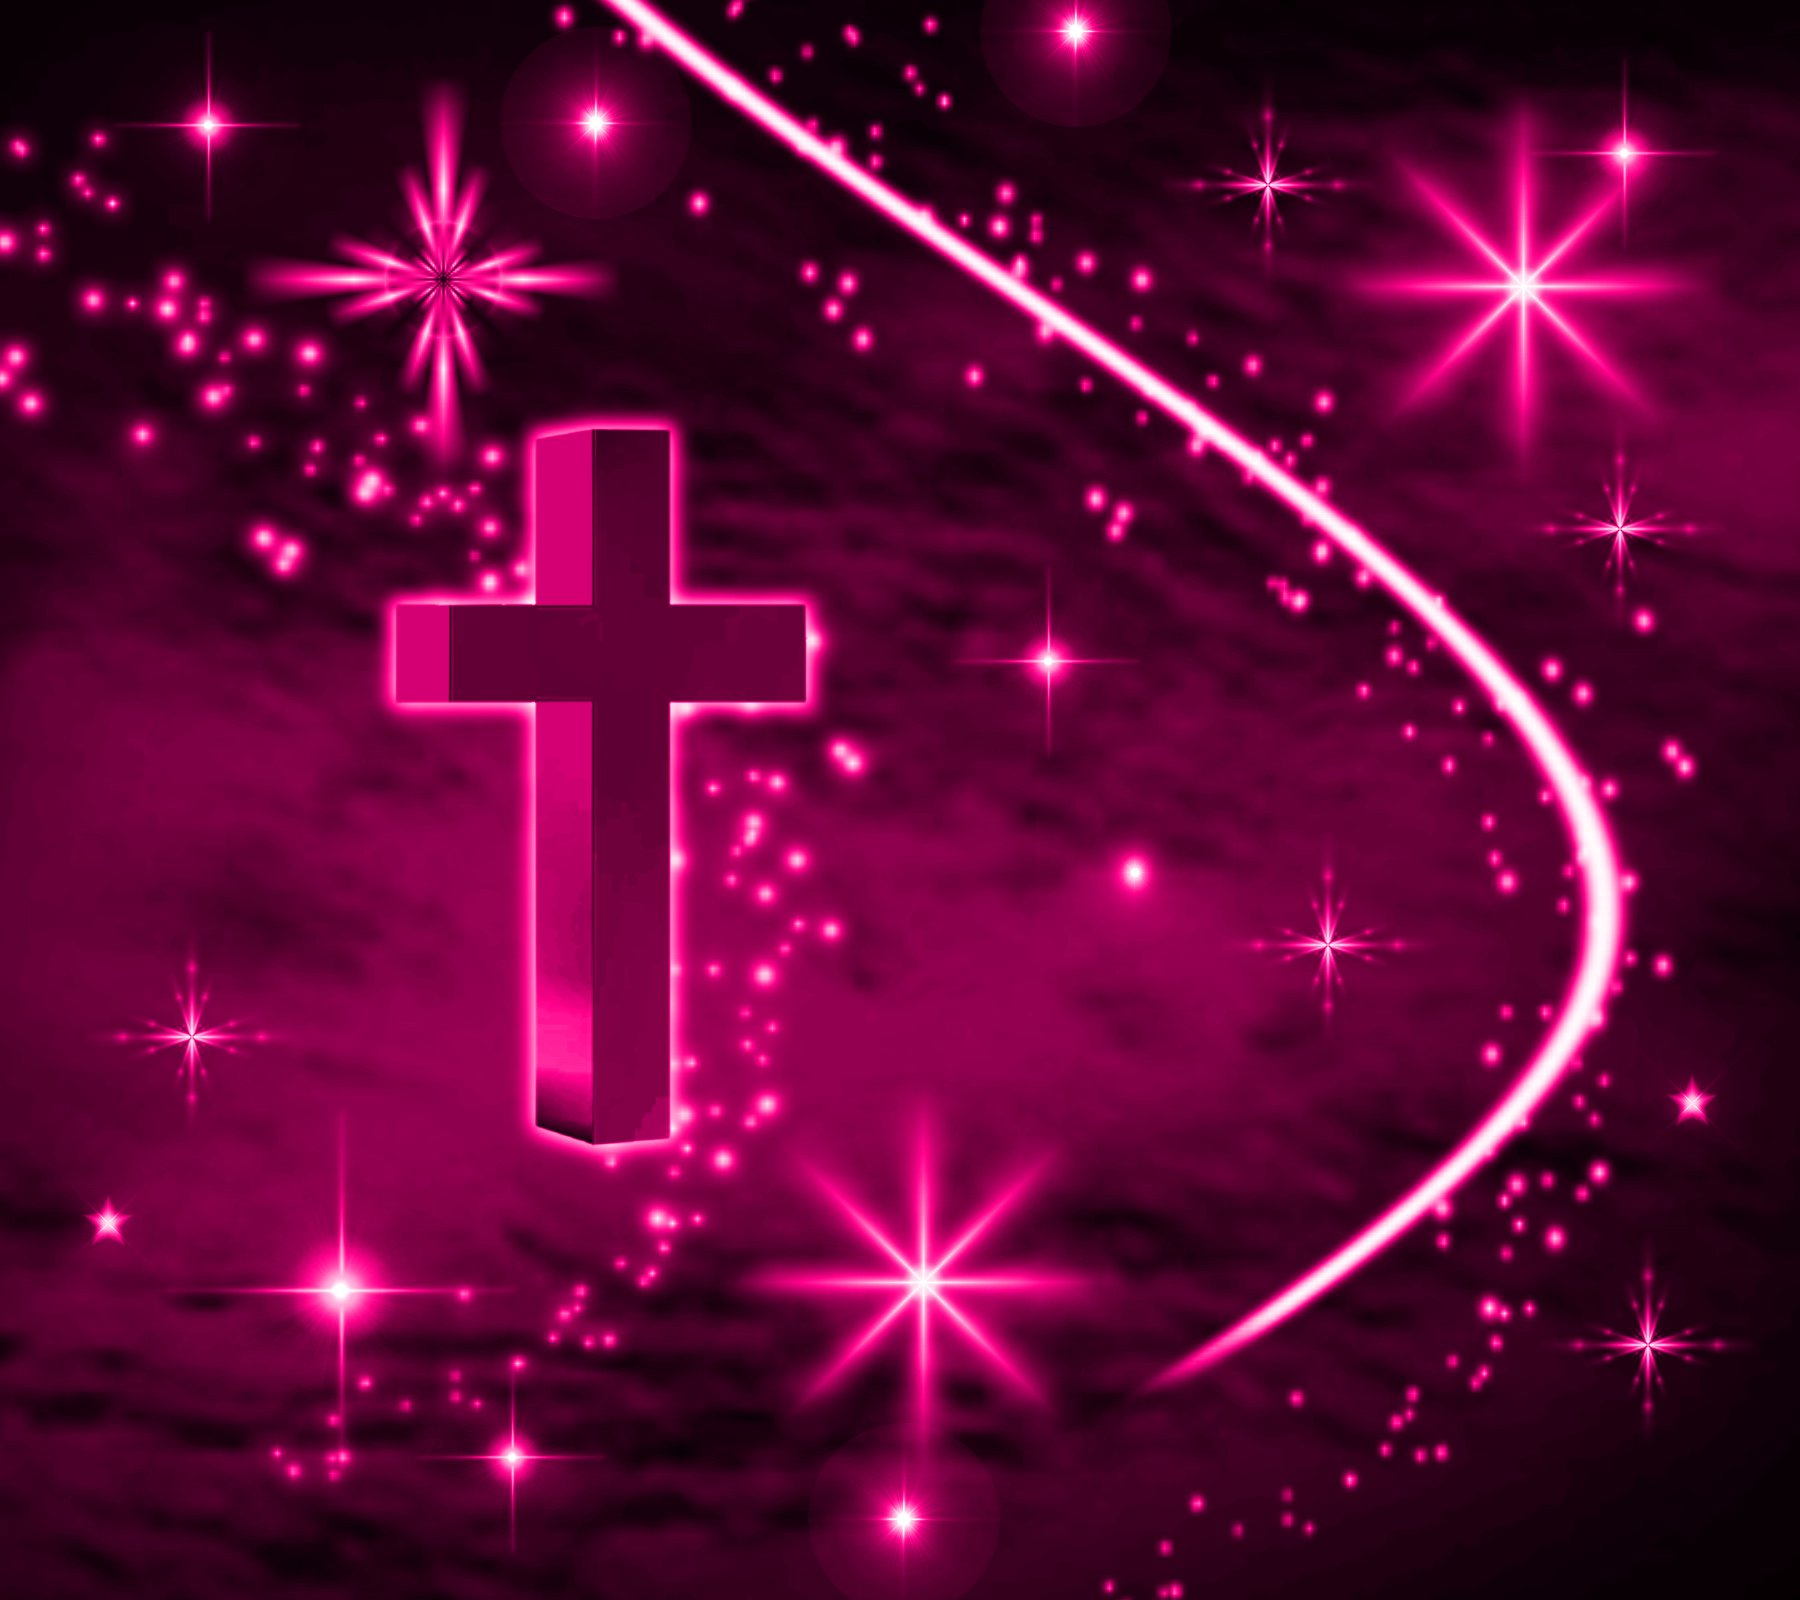 Pink Cross With Stars Background 1800x1600 Background